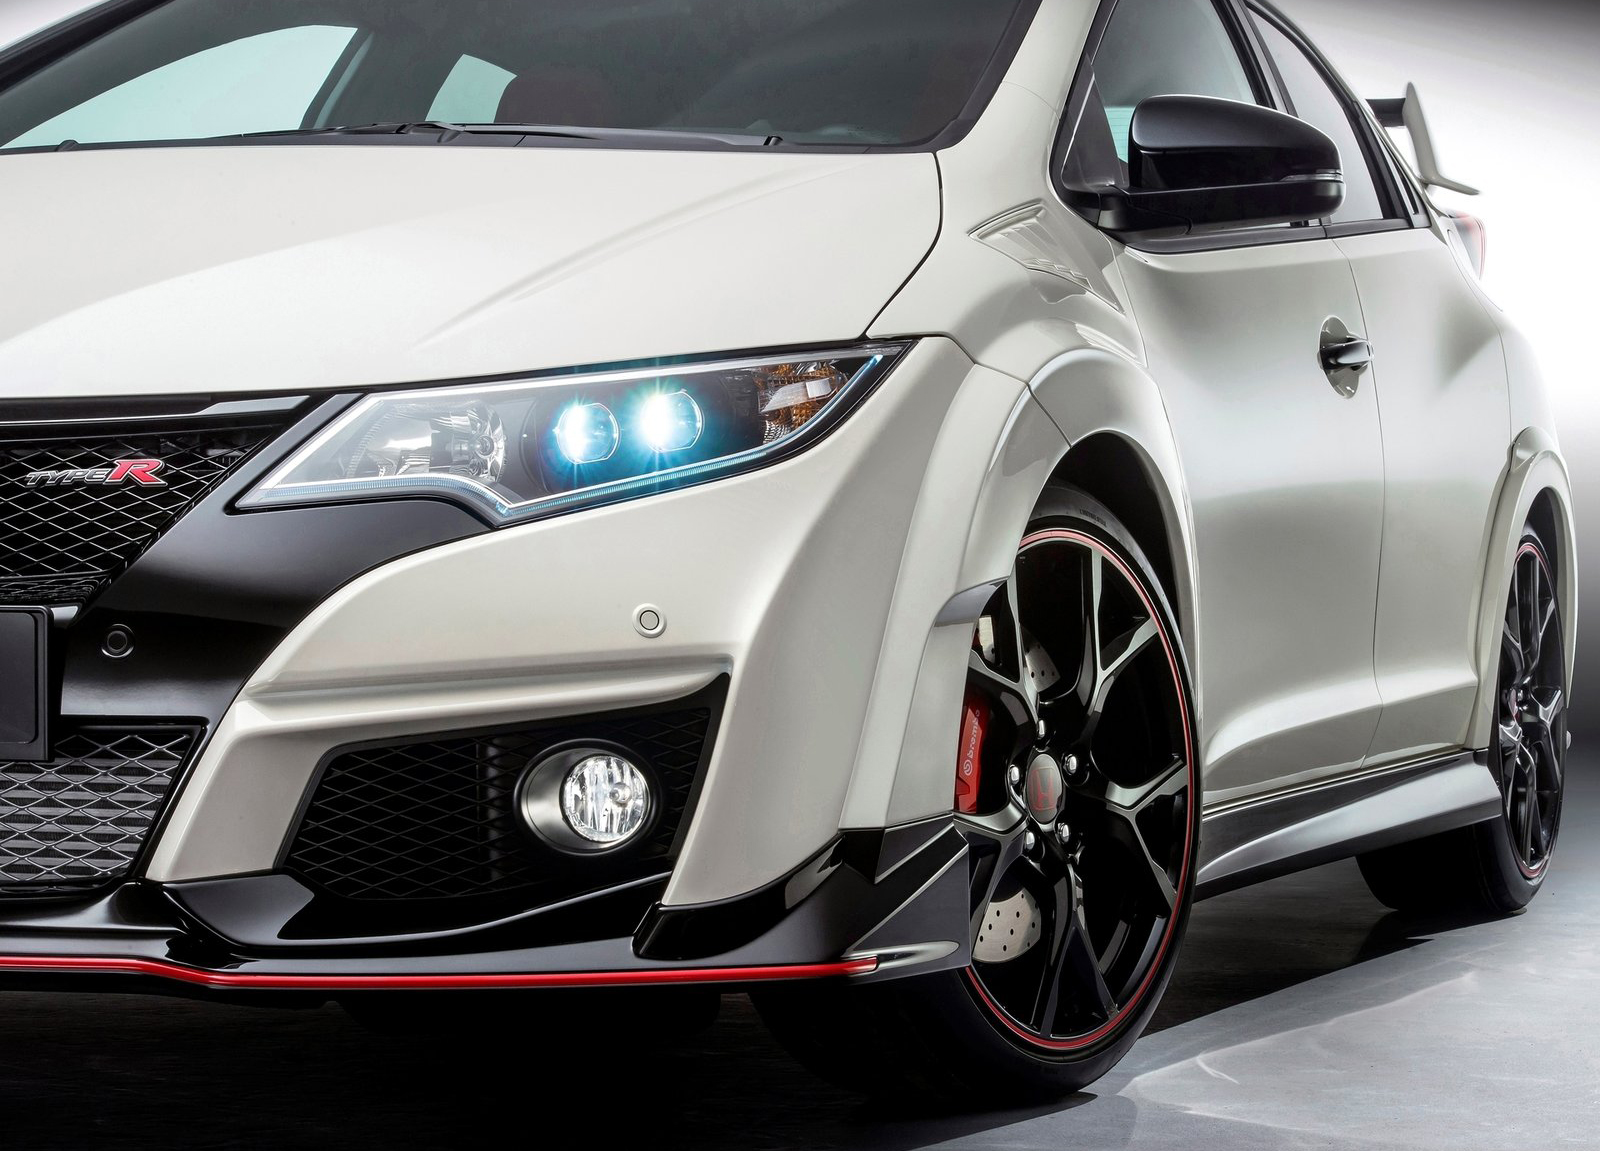 The Week That Was: Honda Civic Type R, Ford Mondeo, Ford Mustang